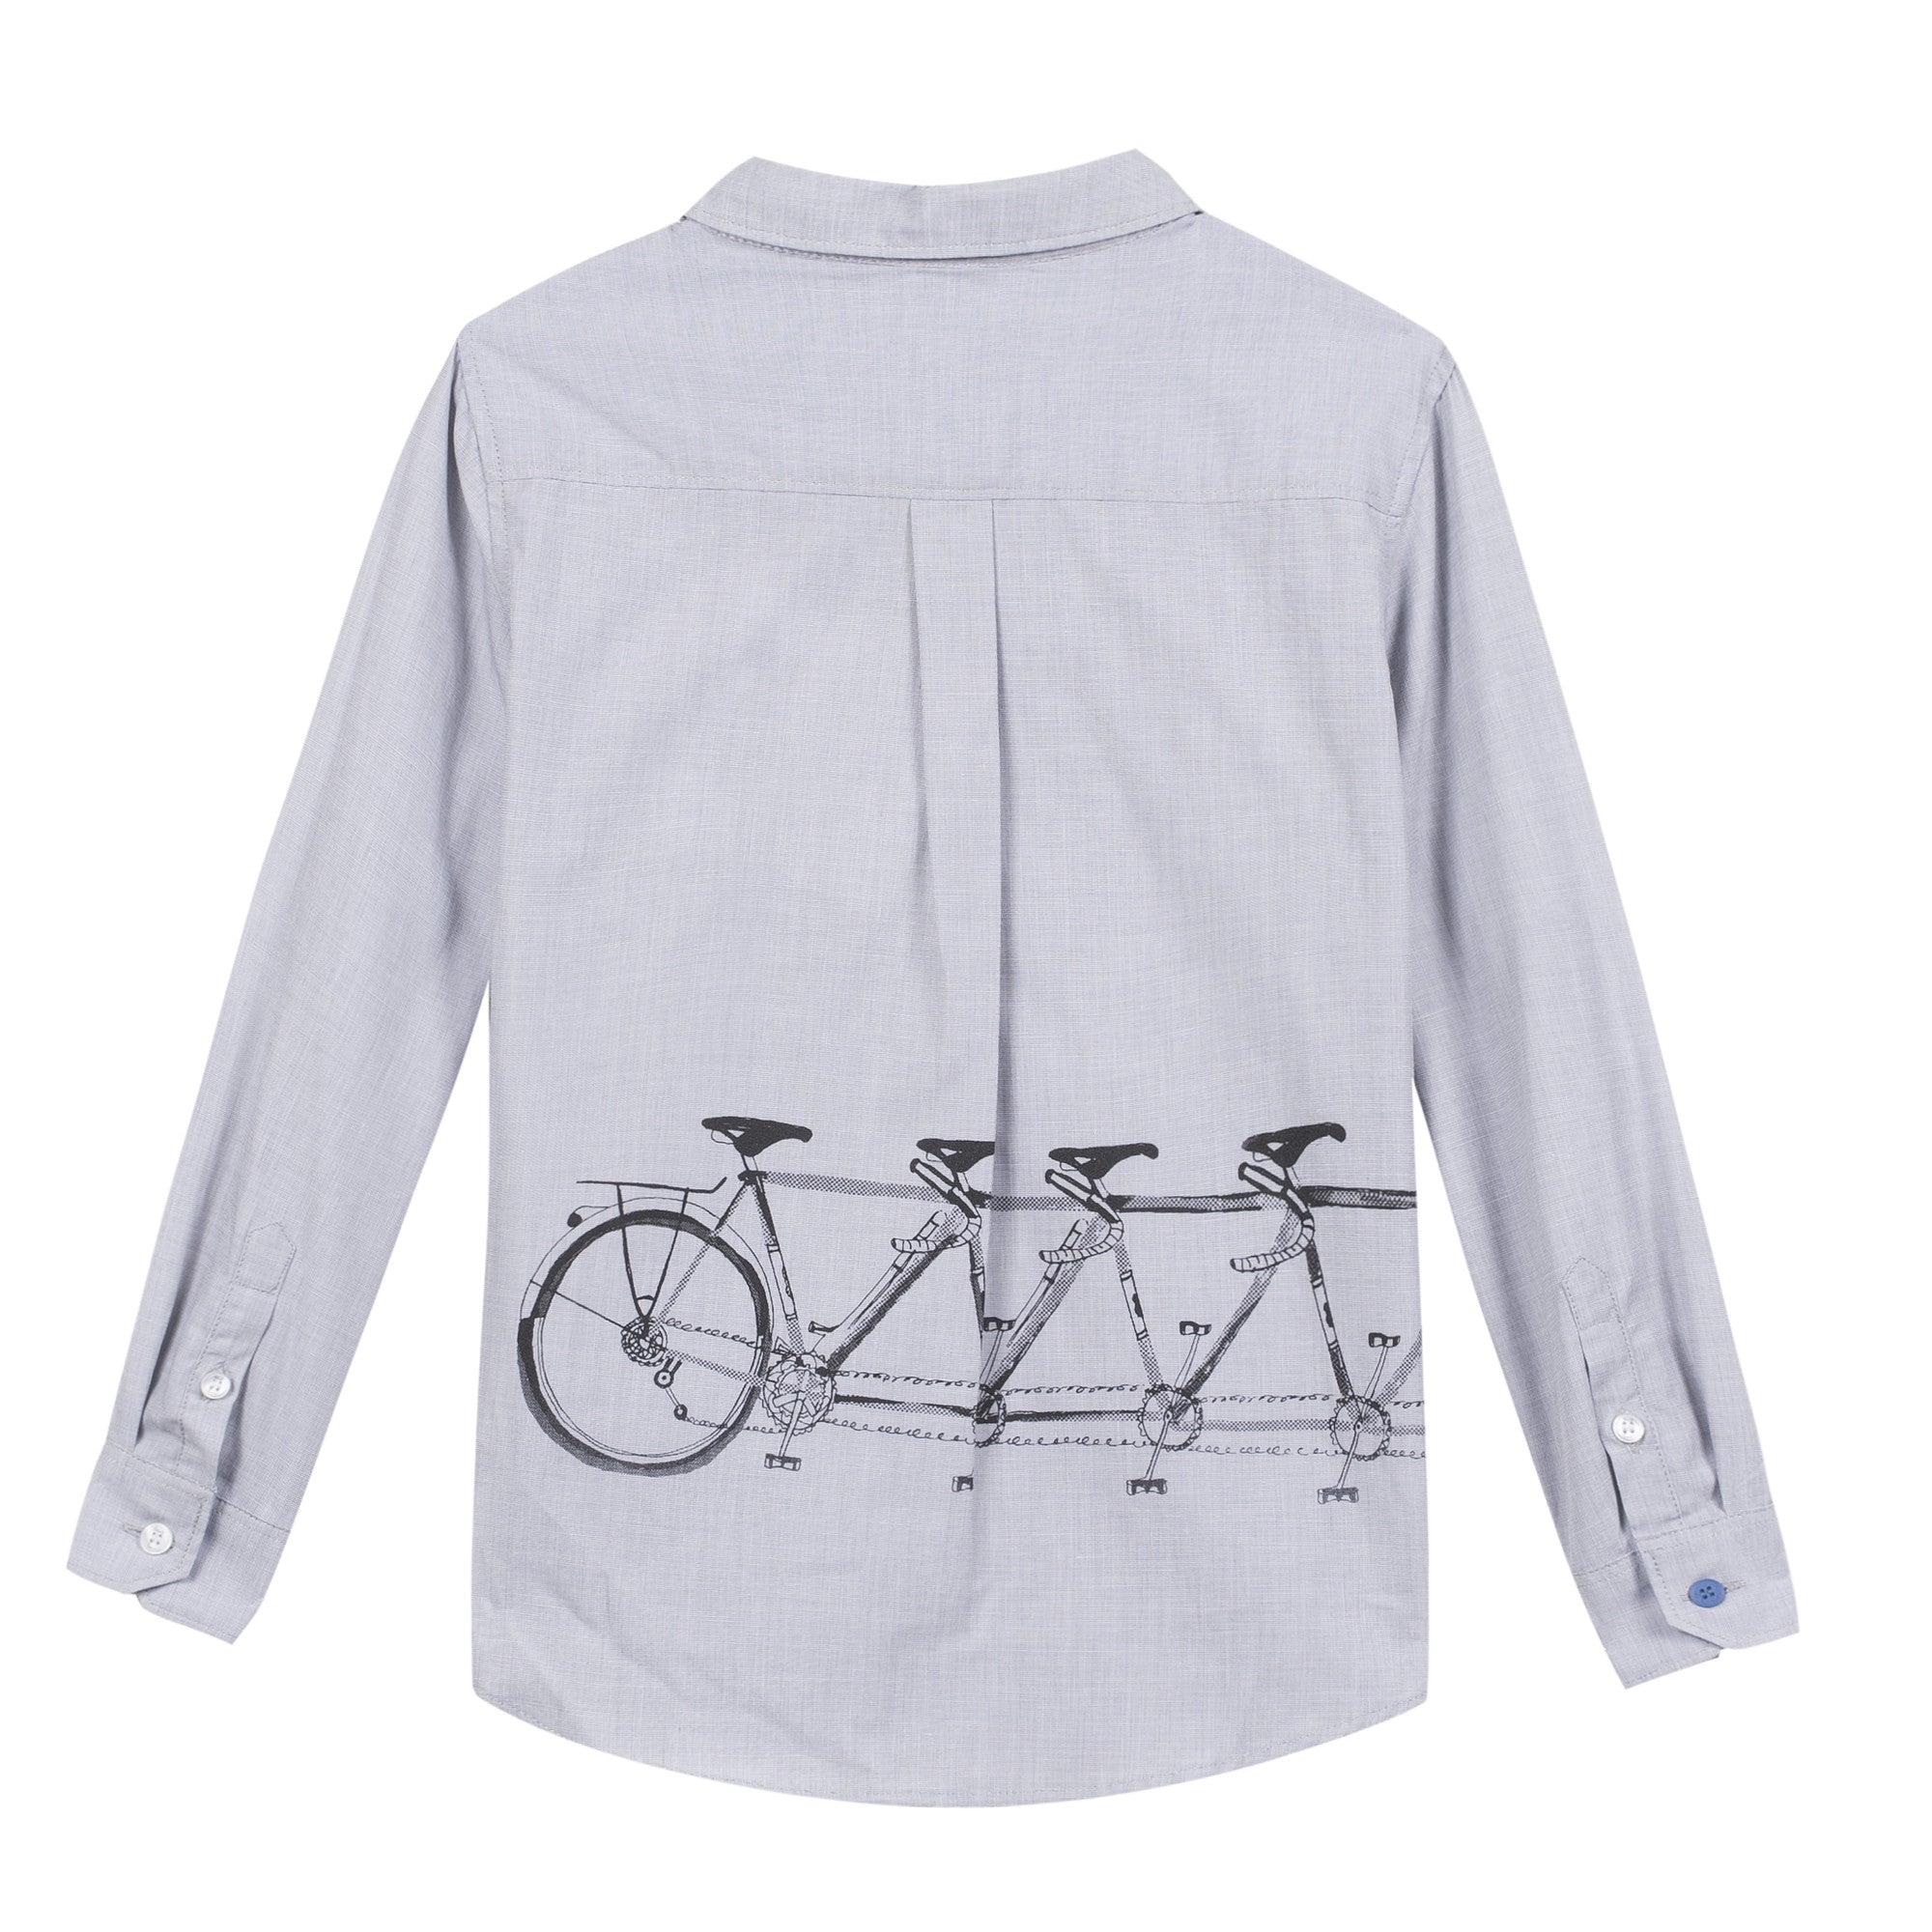 Paul Smith Grey Bike Shirt